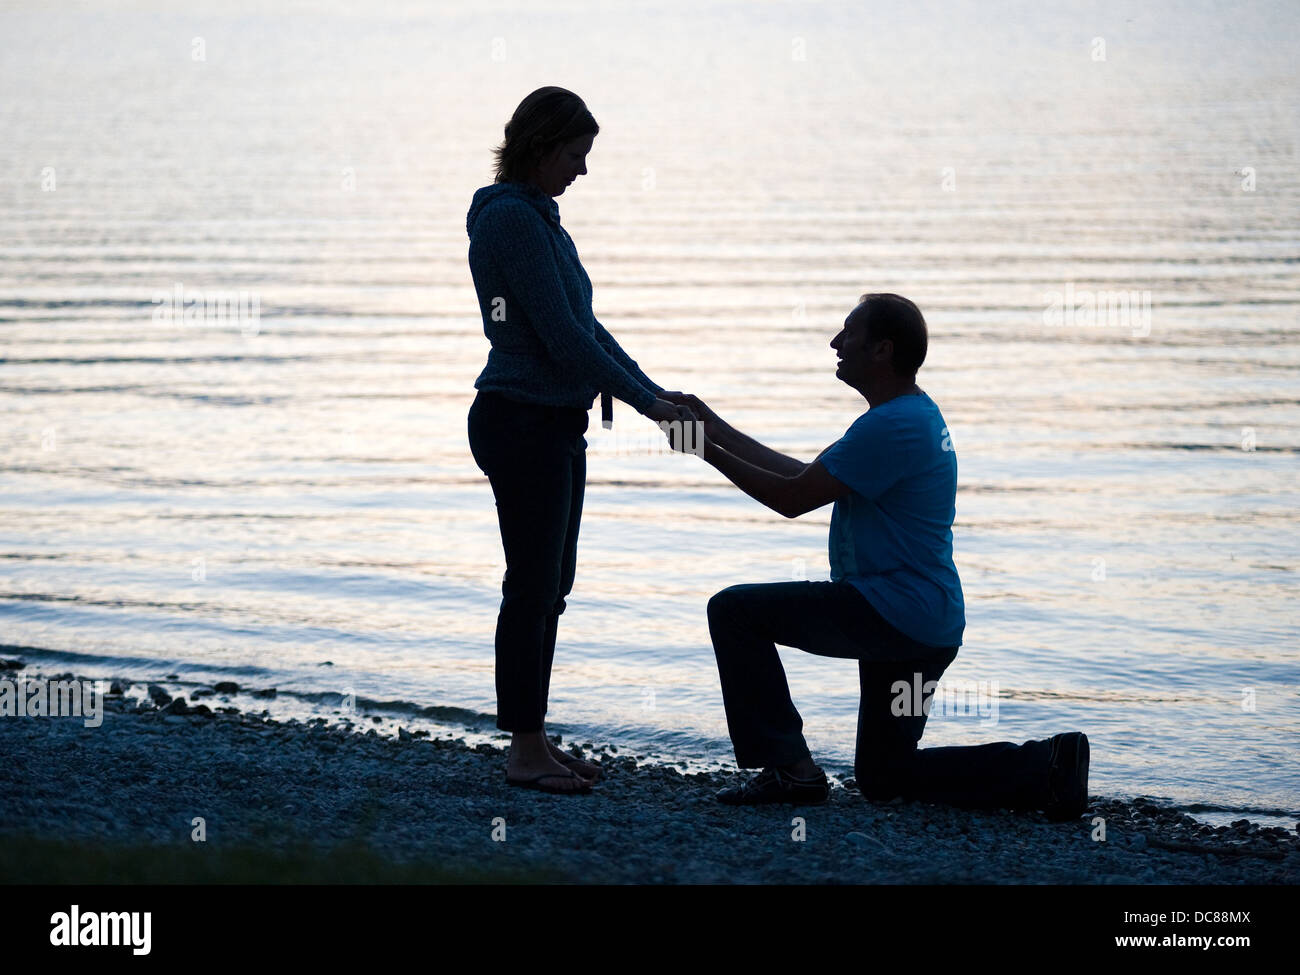 A man is doing a marriage proposal to his girlfriend - Stock Image